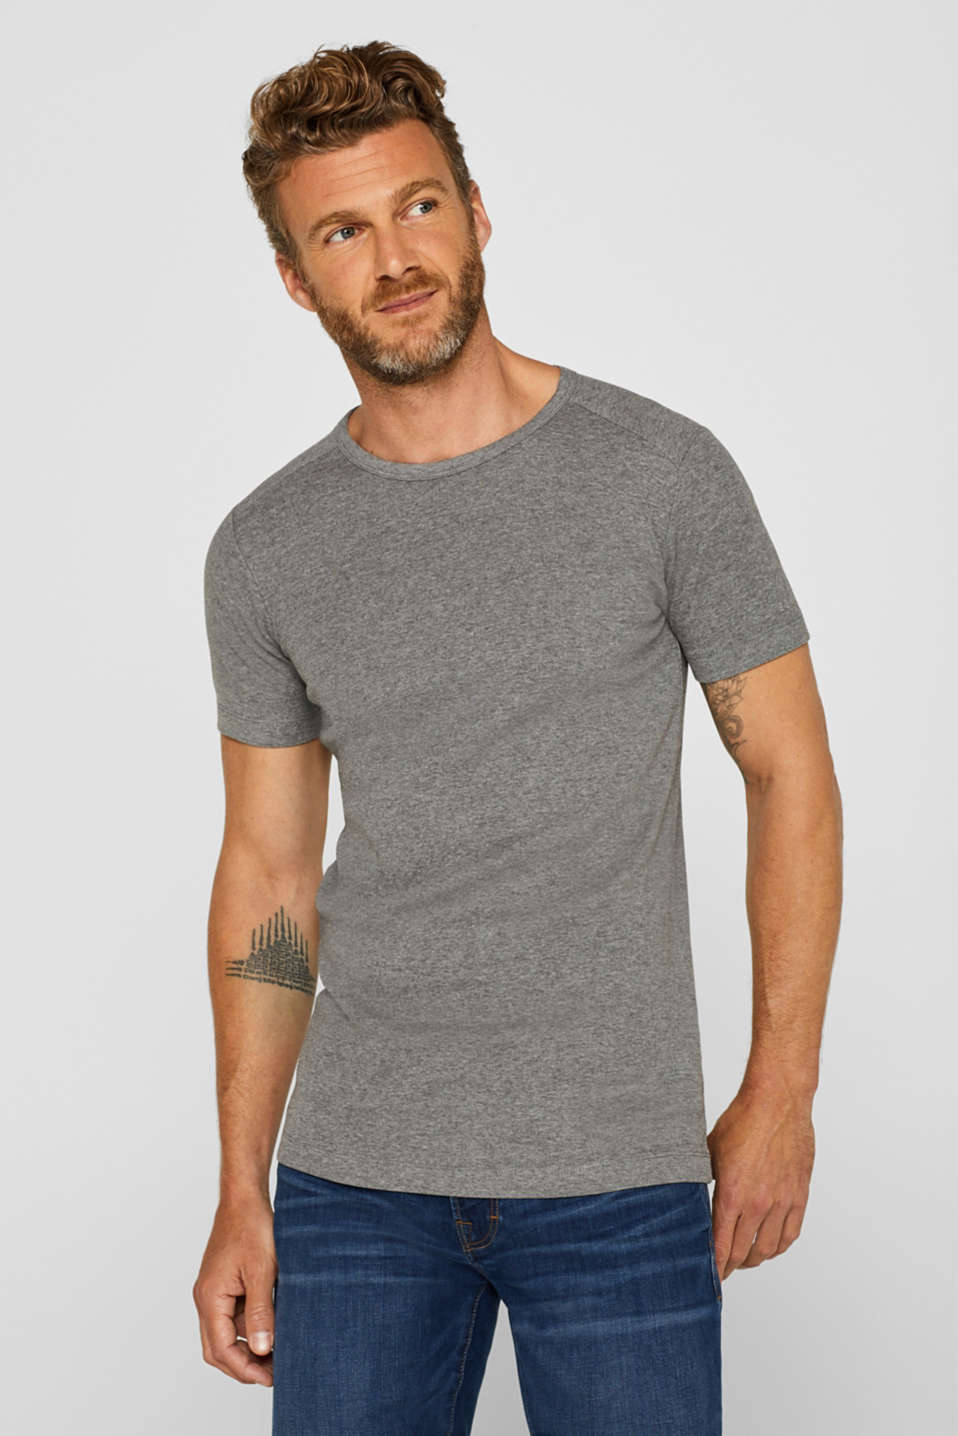 Esprit - Basic jersey T-shirt, with organic cotton